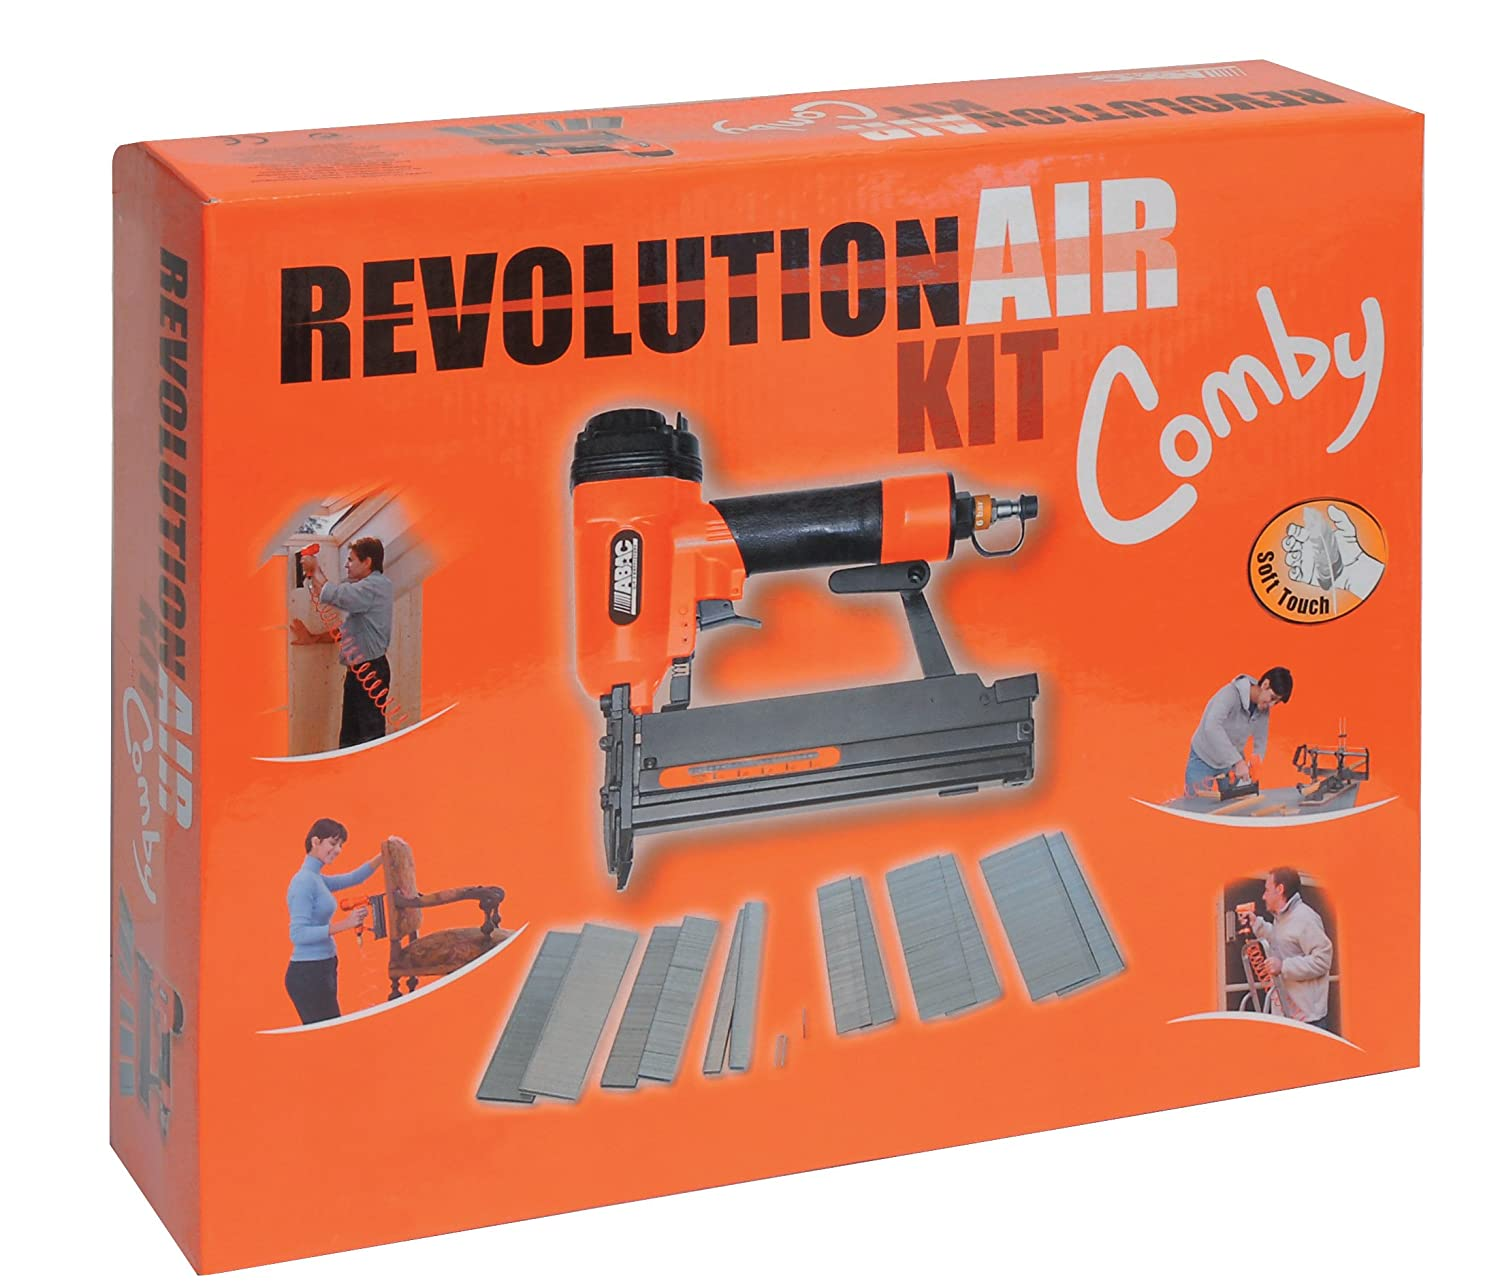 Revolution'Air 8221594 Kit agraffeuse/Cloueuse Mecafer Comby Kit